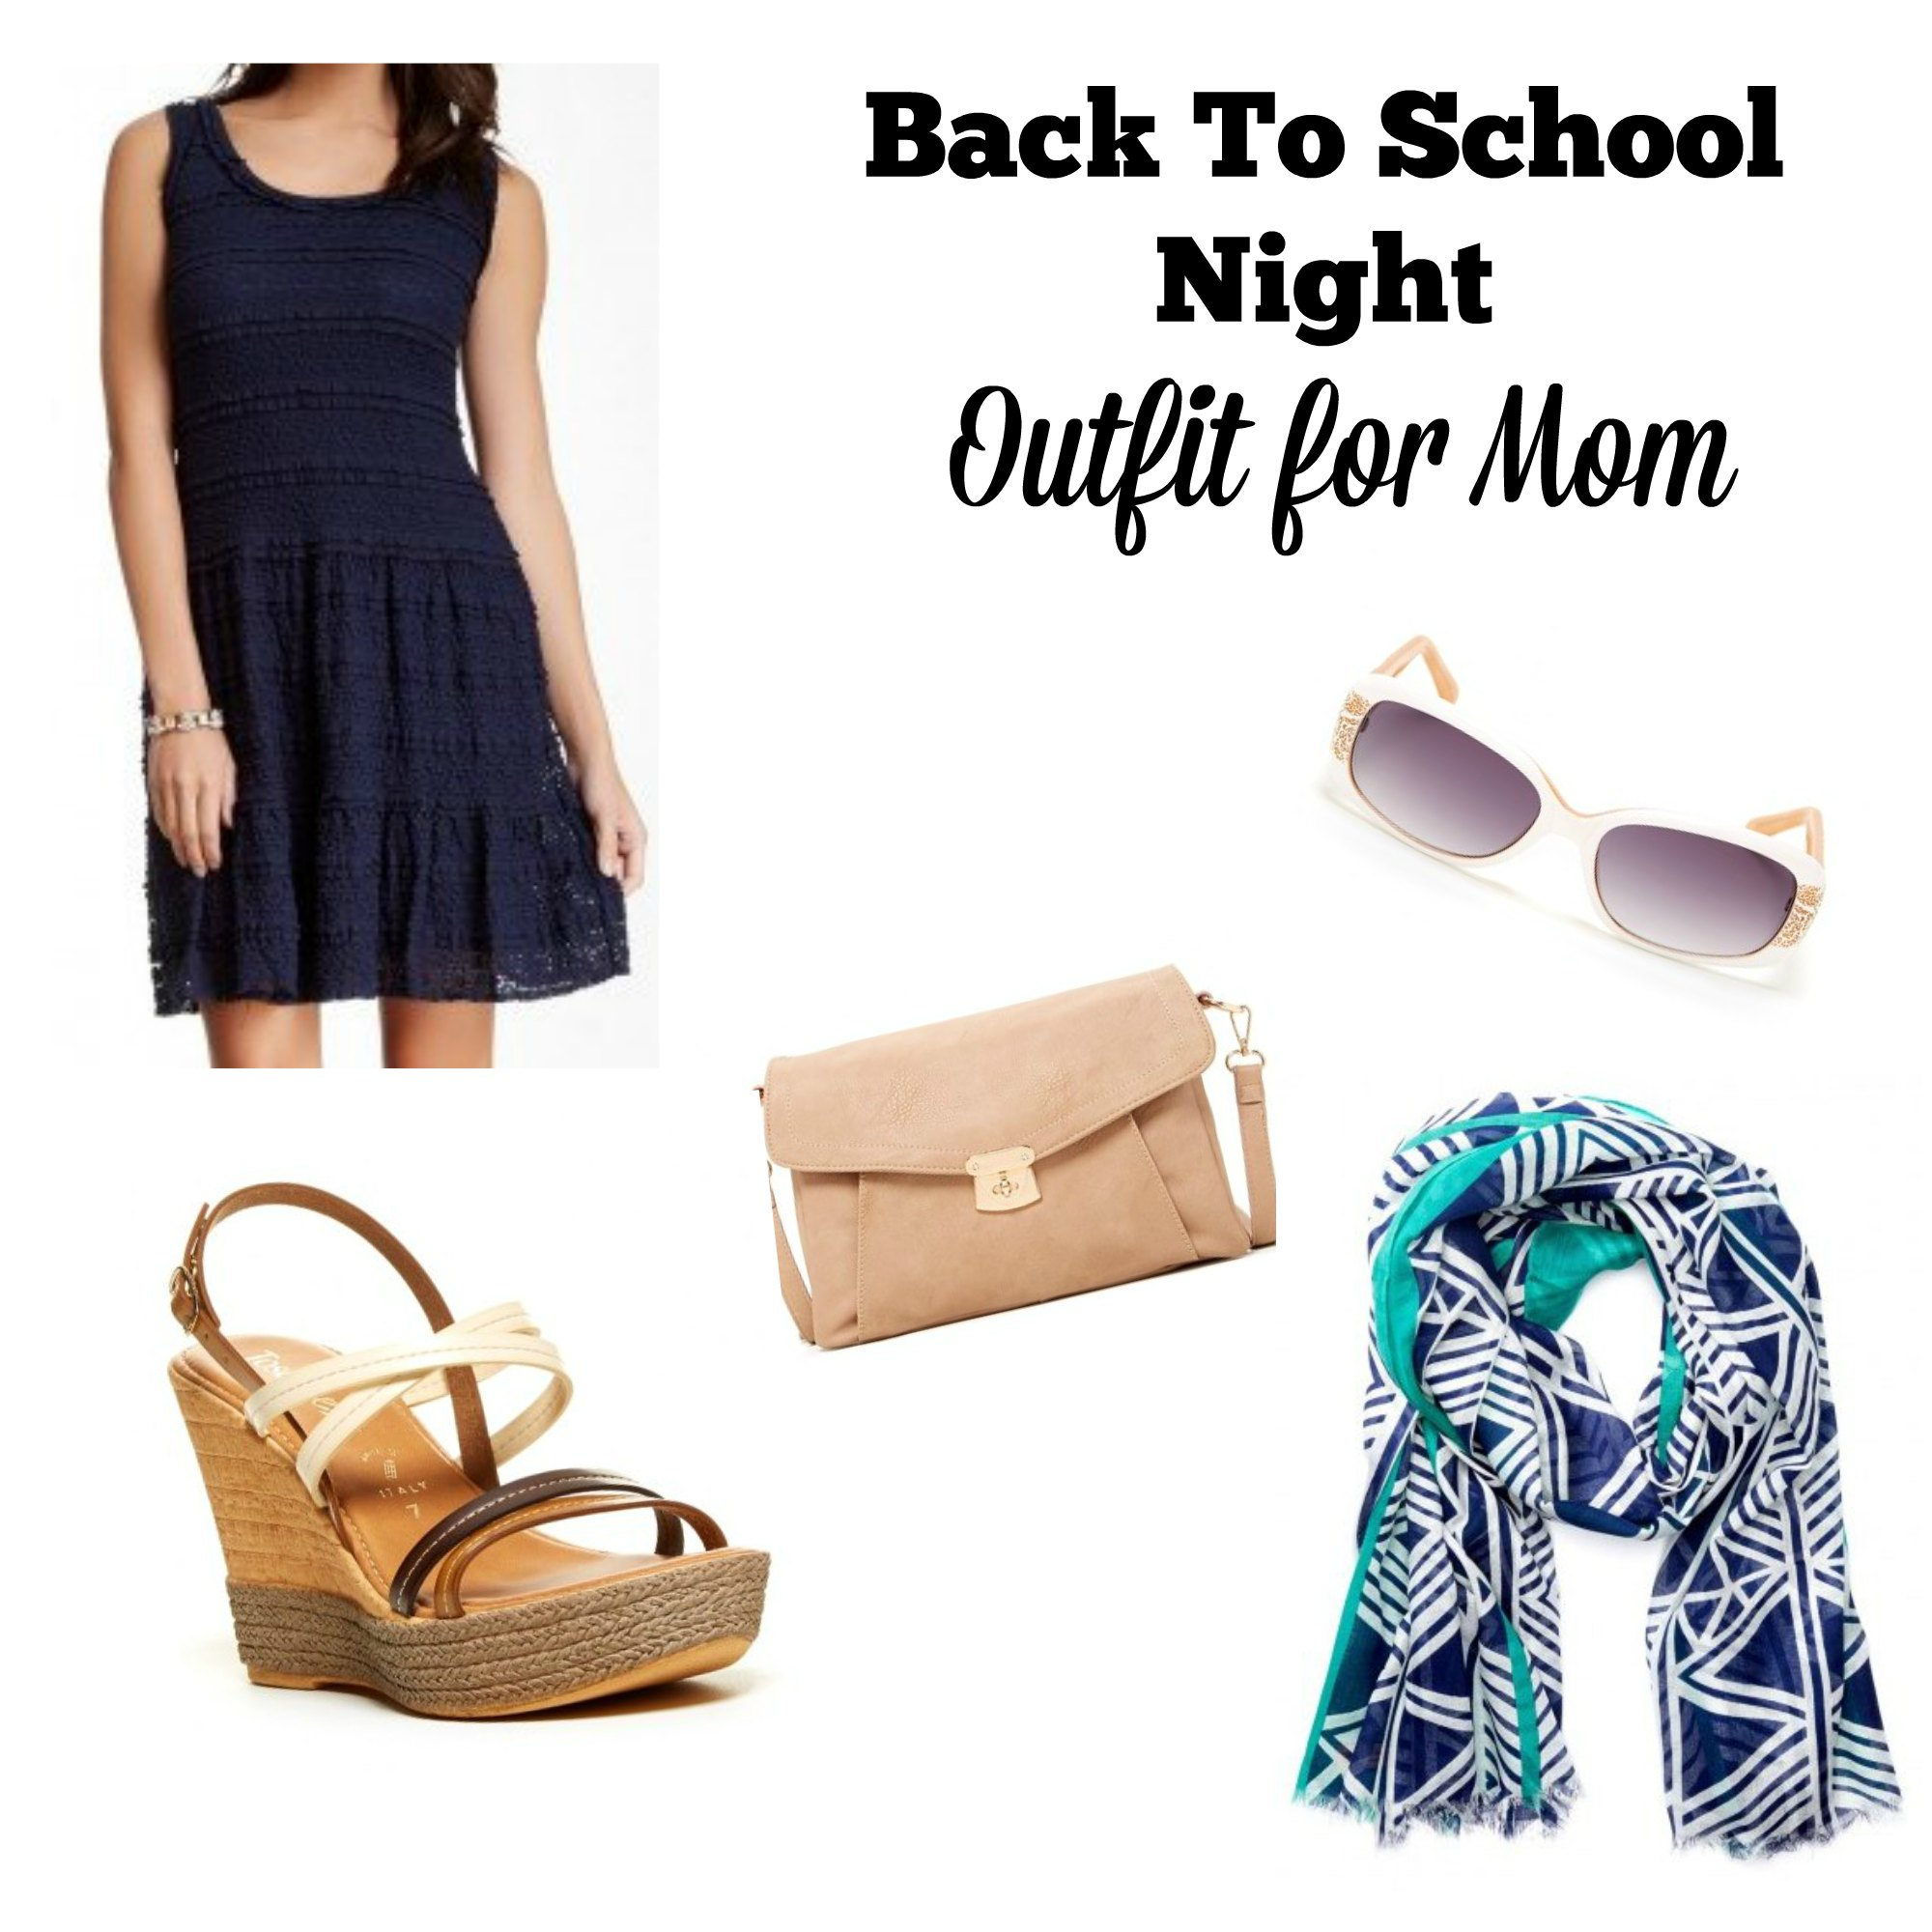 Back To School Shopping With Nordstrom Rack #NordstromRack